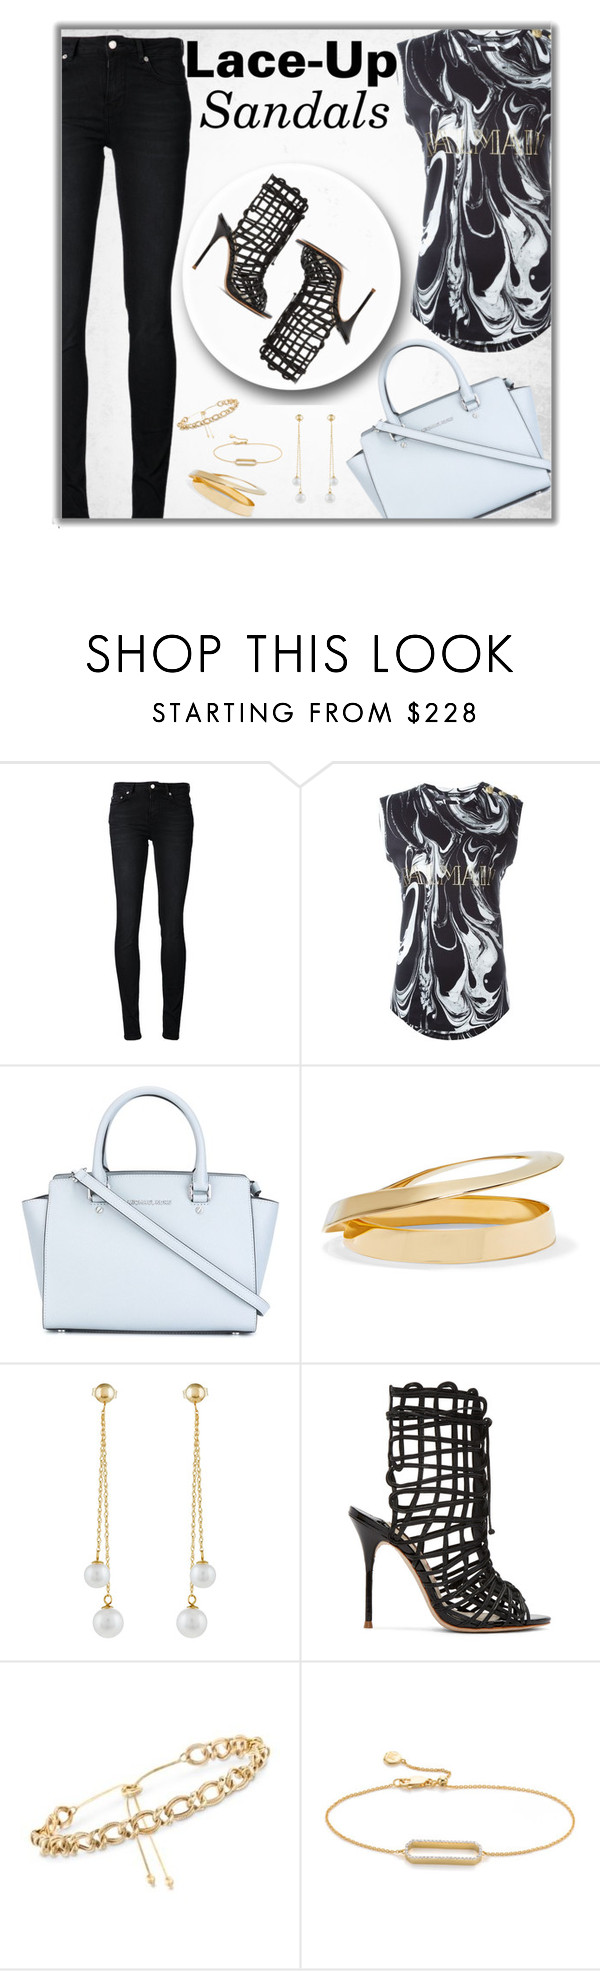 """""""Strapped In: Lace-Up Sandals"""" by fashionbrownies ❤ liked on Polyvore featuring BLK DNM, Balmain, MICHAEL Michael Kors, Marni, Effy Jewelry, Sophia Webster, Ross-Simons and Monica Vinader"""